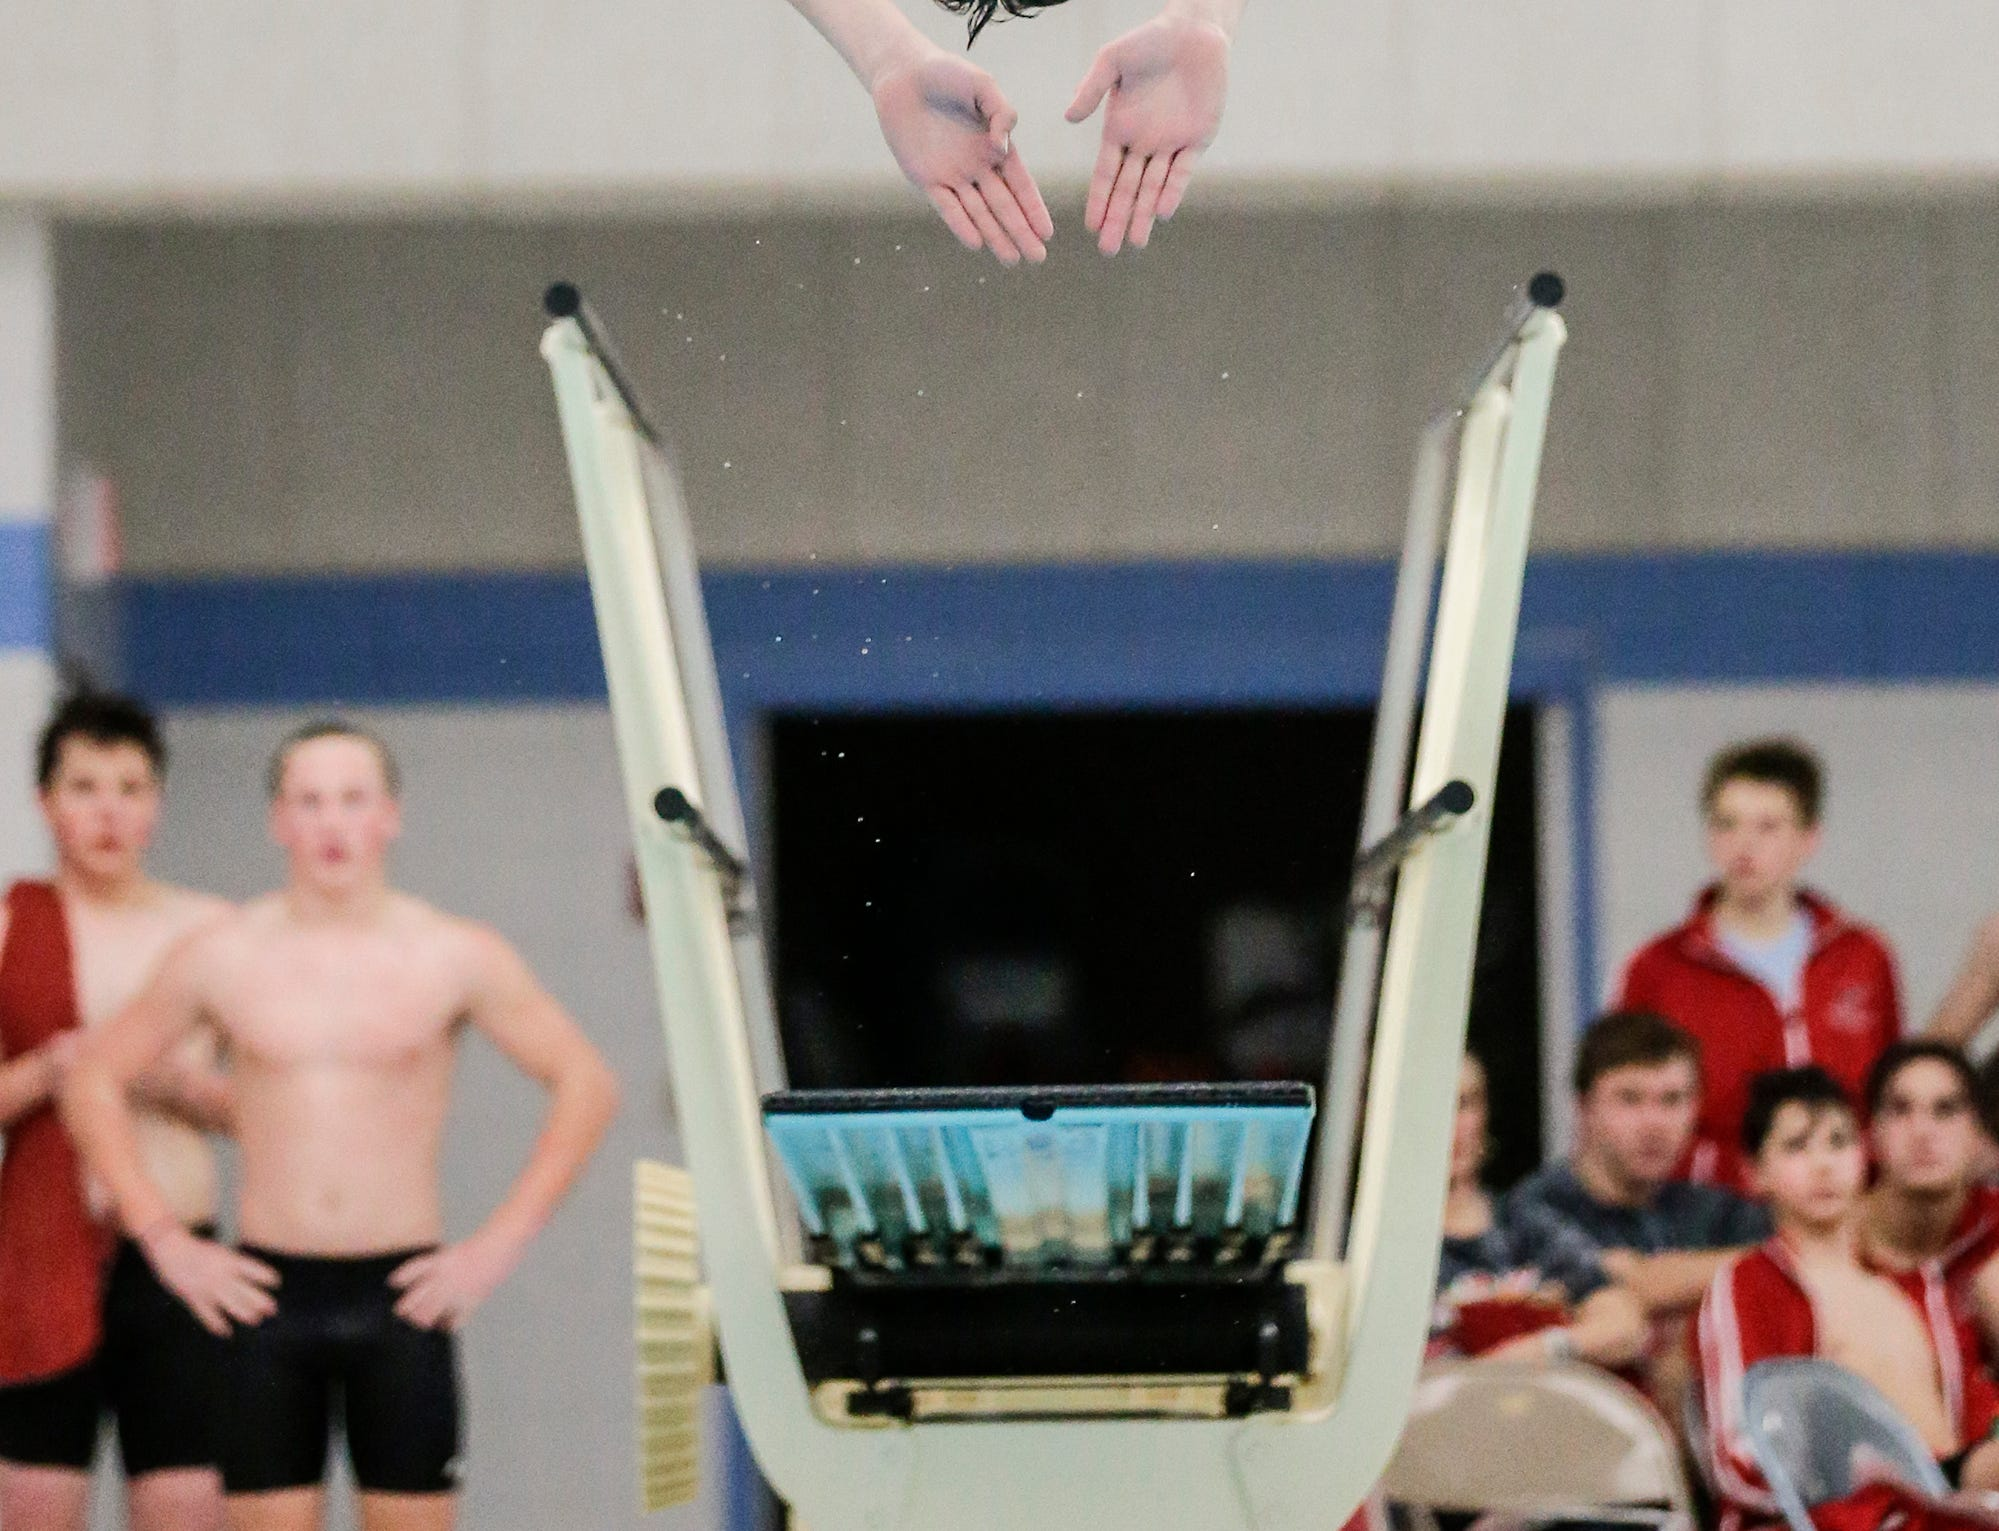 Neenah High School's Nicholas Grotenhuis competes in the diving competition against Fond du Lac High School during their swim meet Tuesday, December 11, 2018 in Fond du Lac, Wisconsin. Doug Raflik/USA TODAY NETWORK-Wisconsin